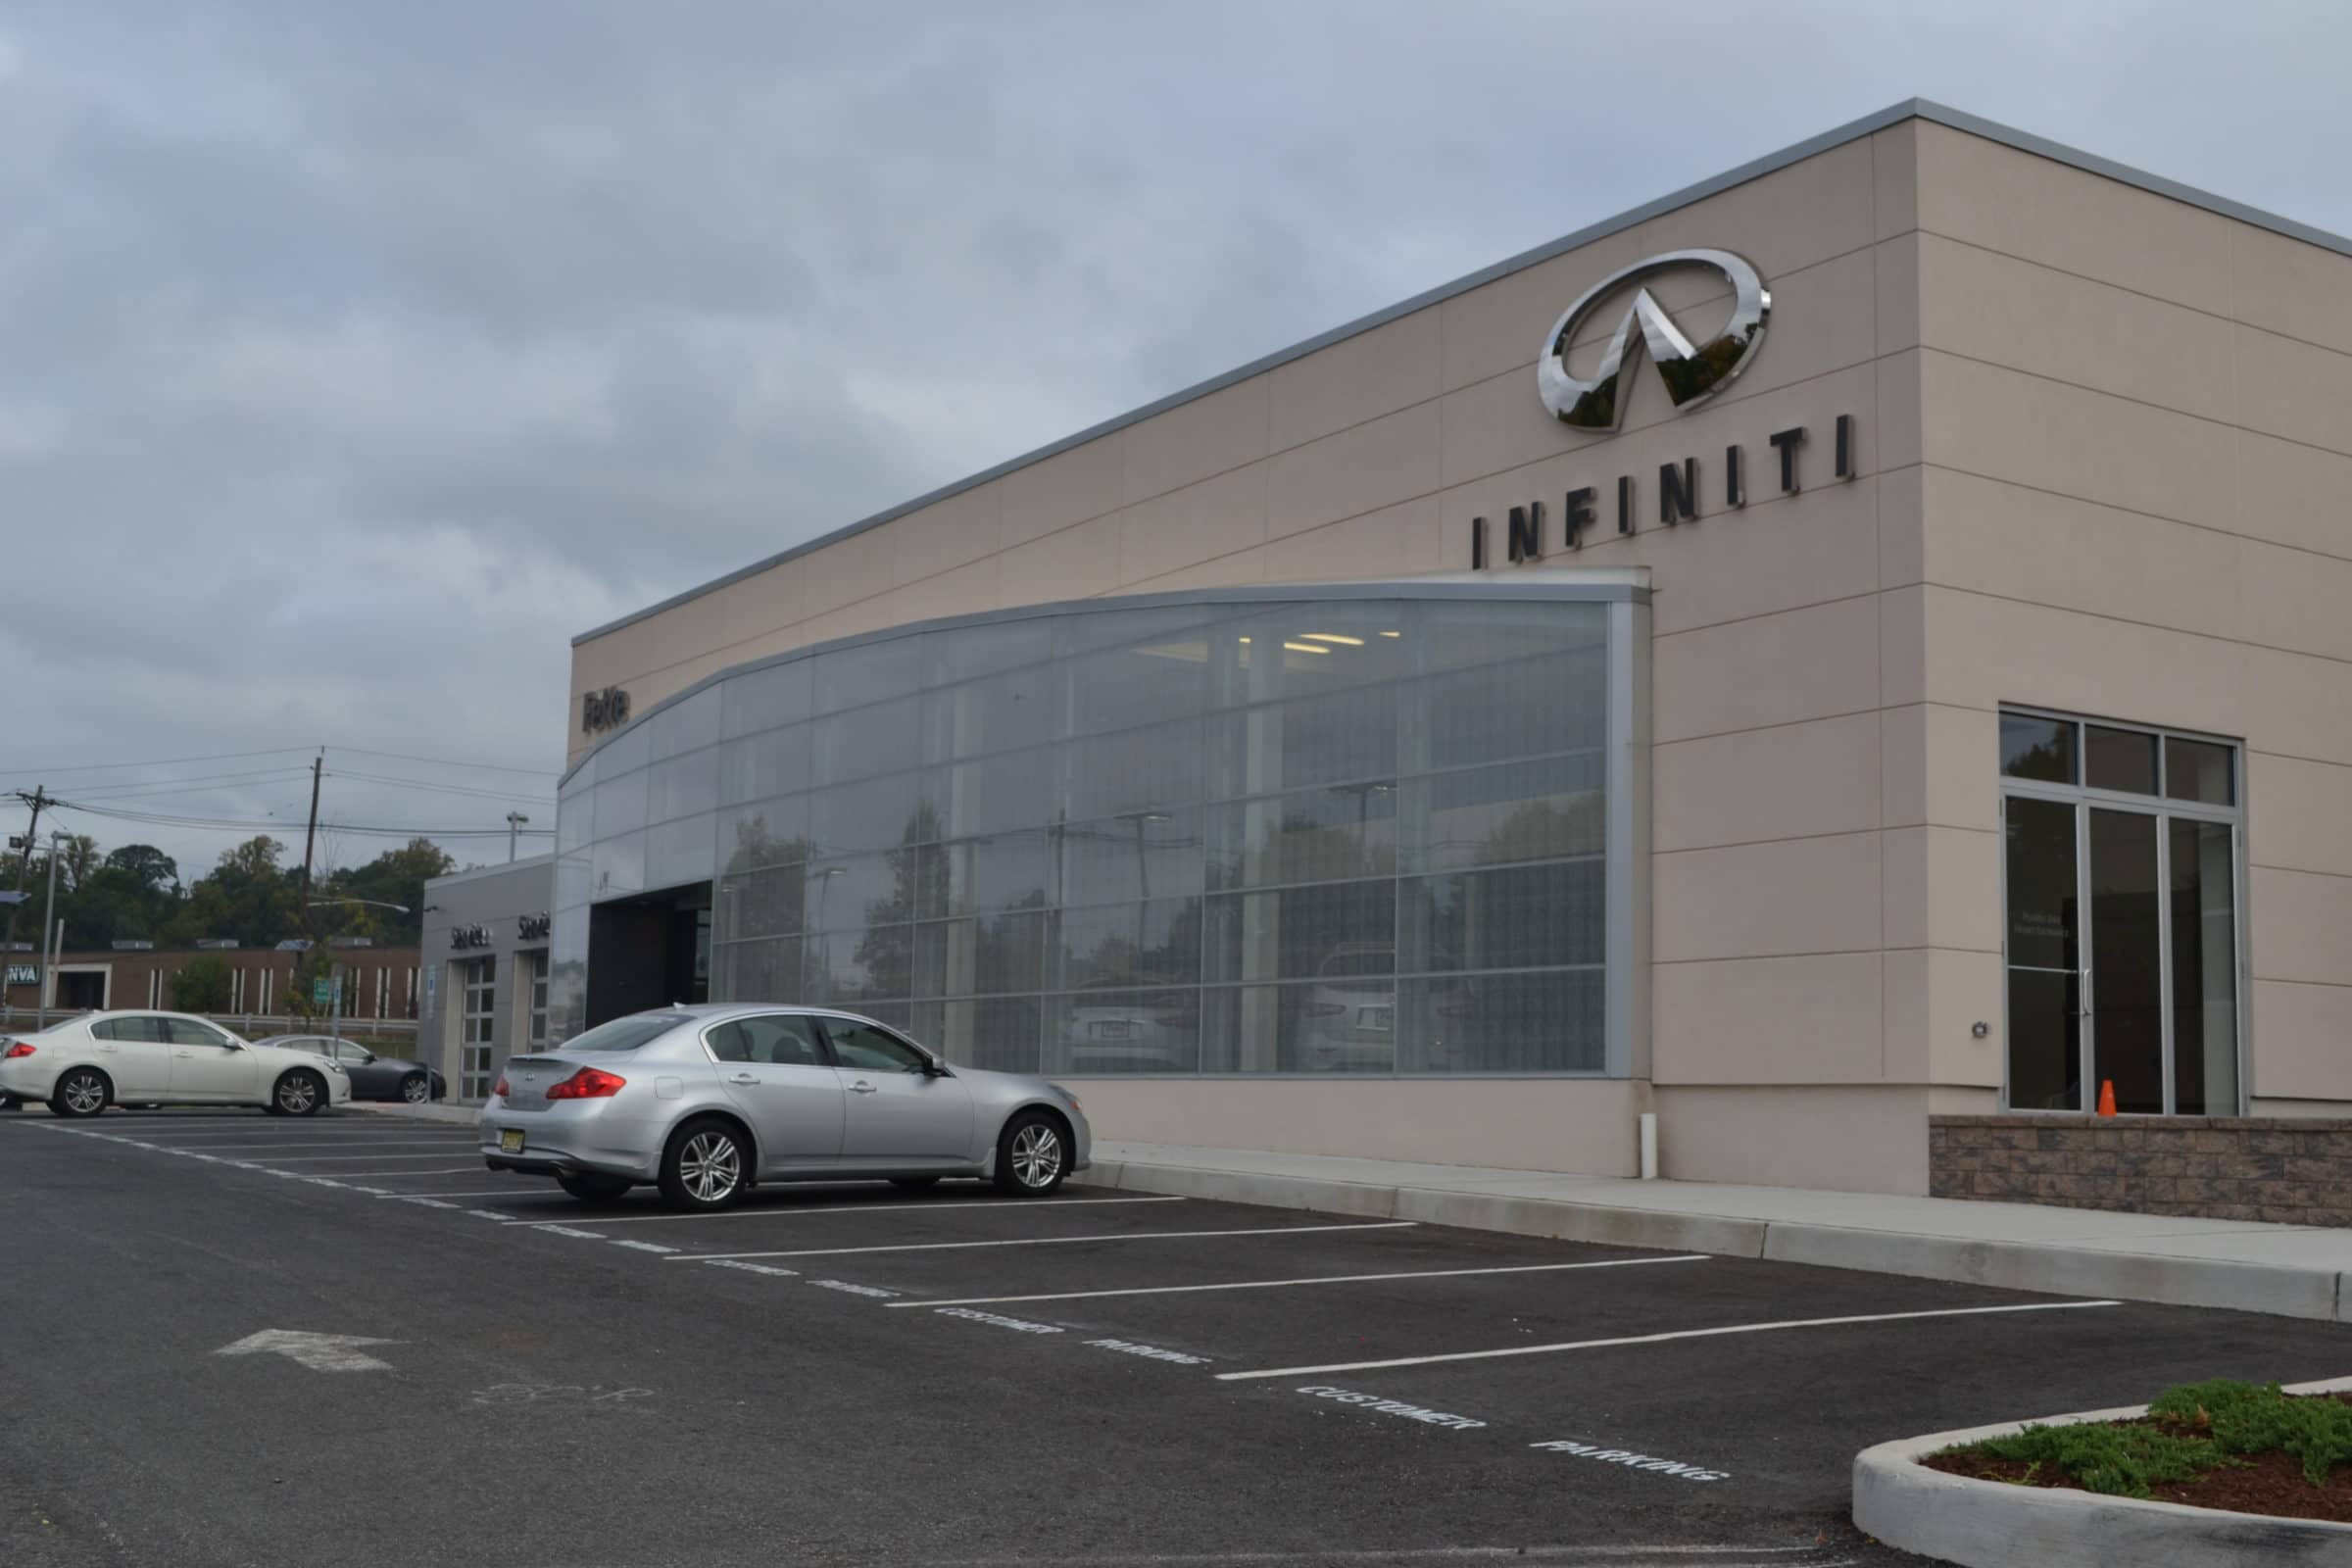 Commercial Masonry Project in Passaic County NJ - Infinity Dealership by McEntee Construction